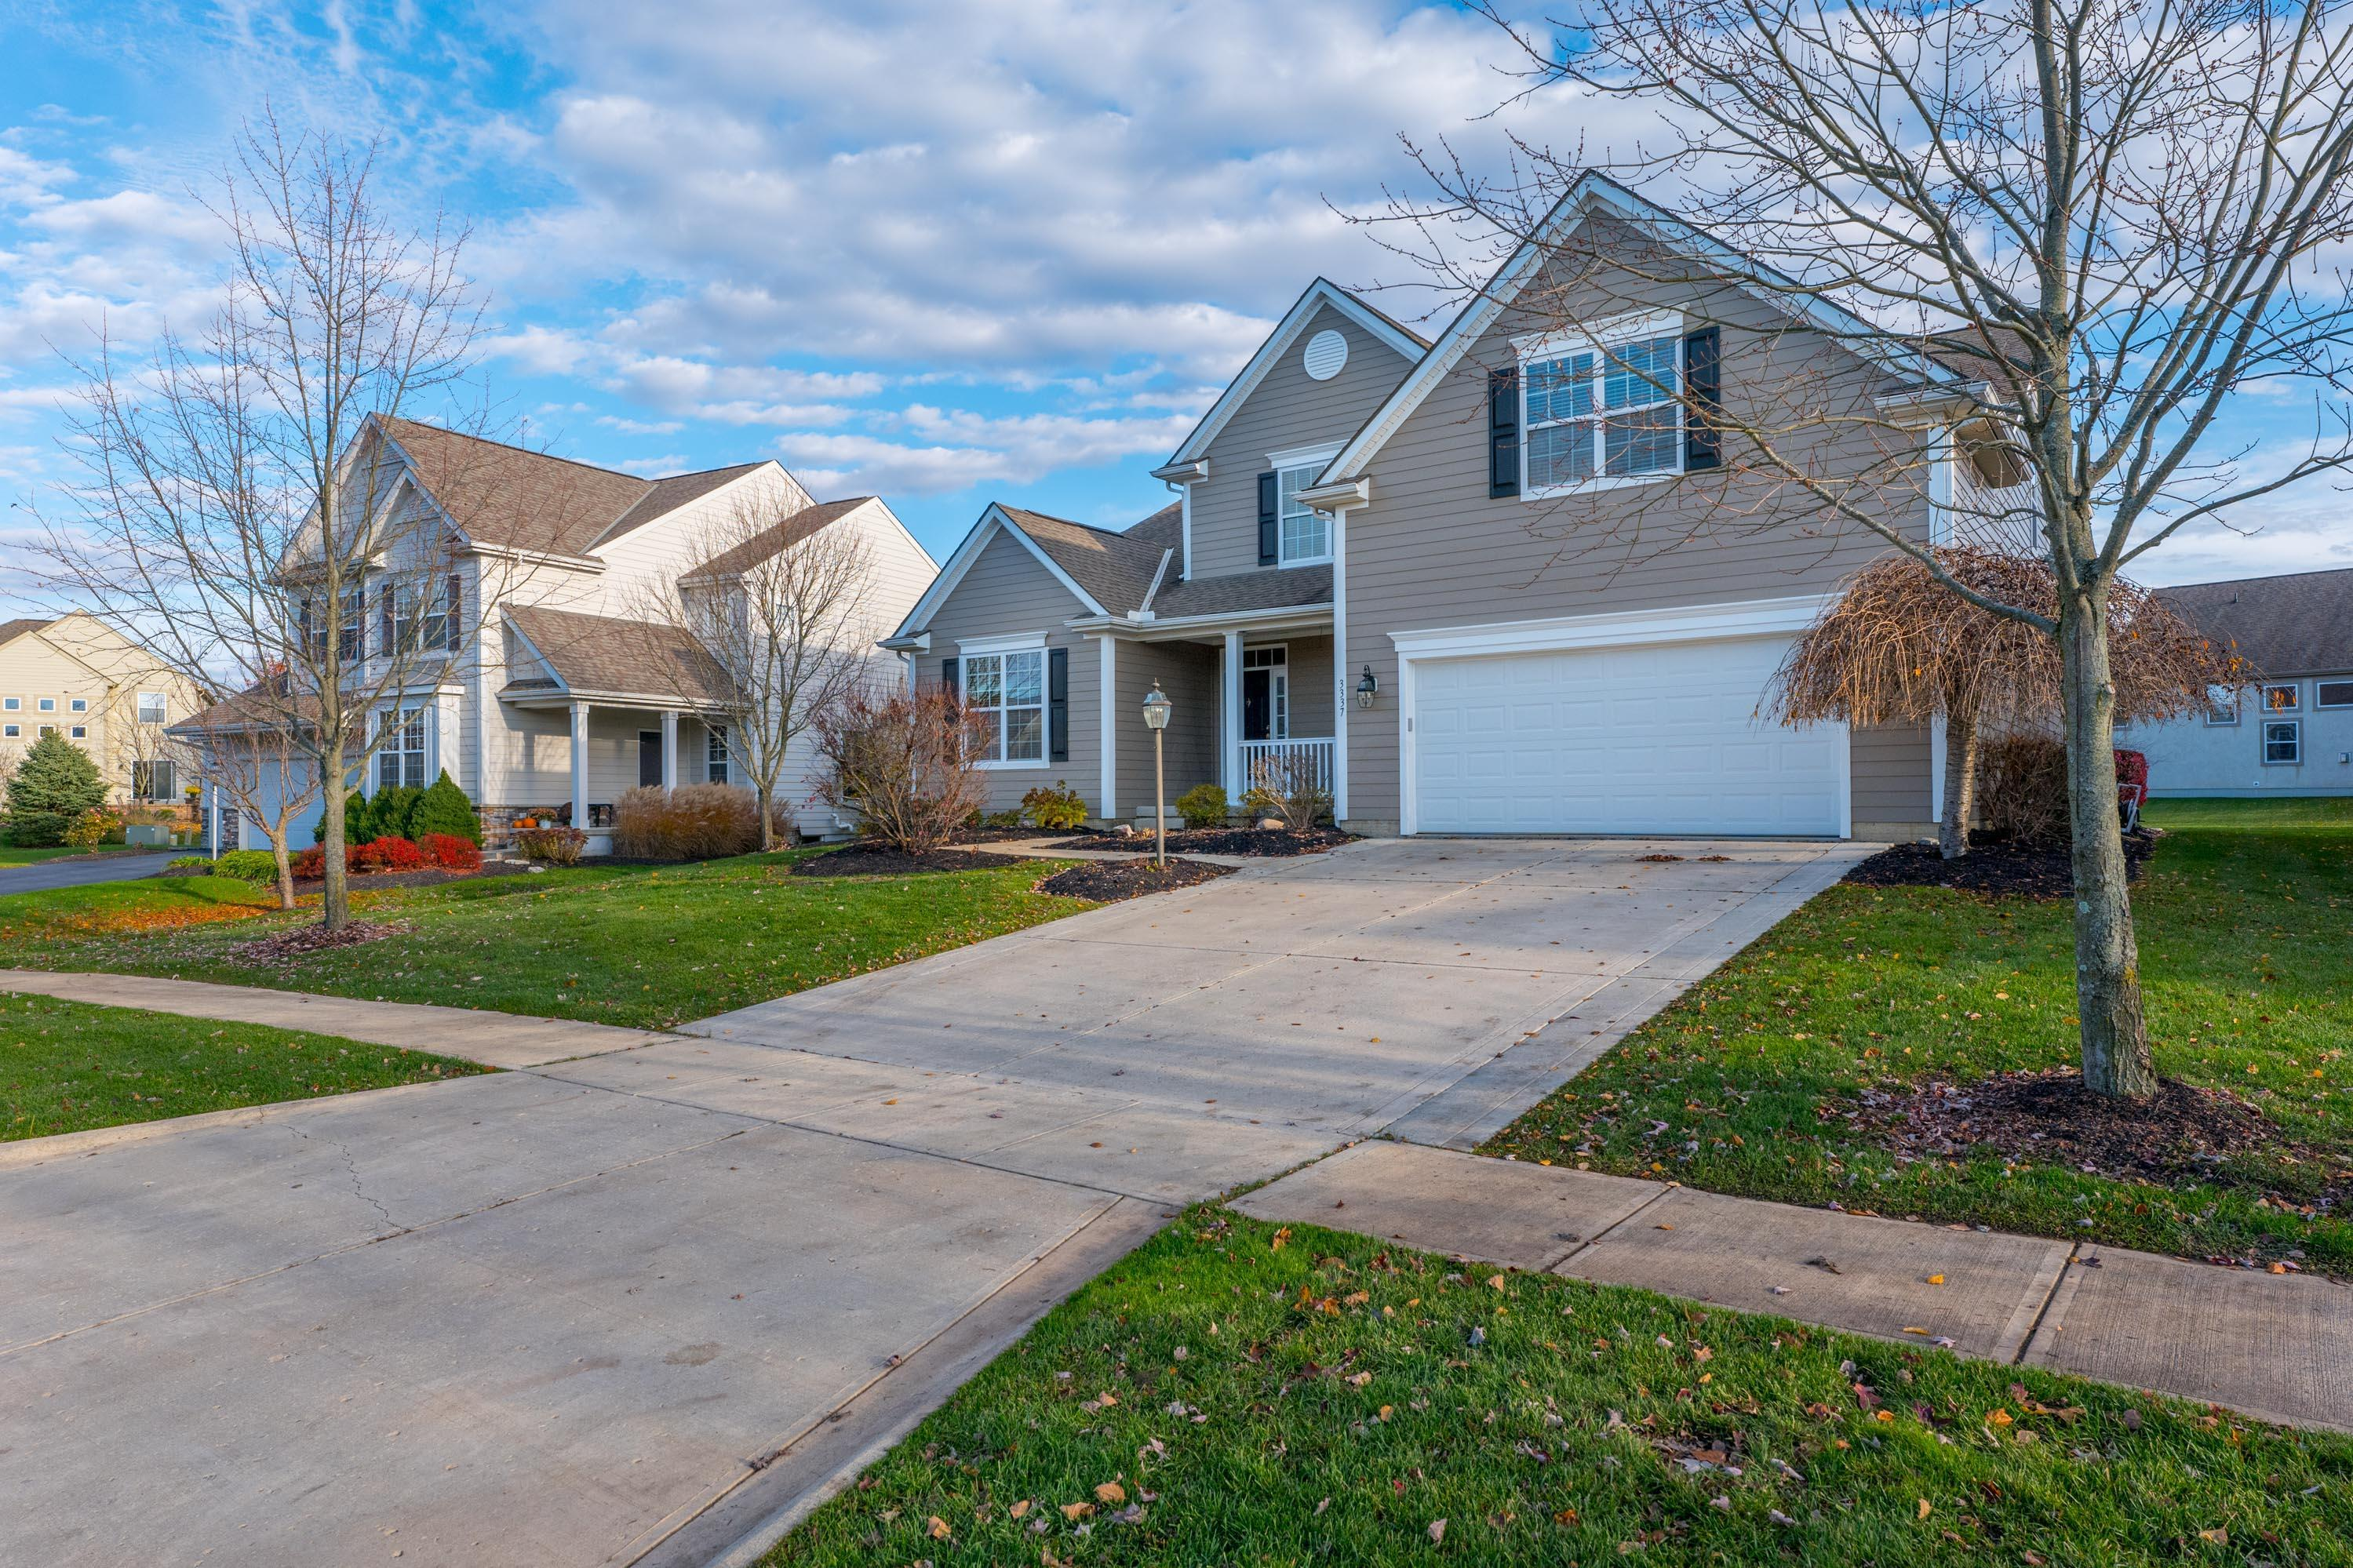 3337 Farmers Delight Drive, Lewis Center, Ohio 43035, 5 Bedrooms Bedrooms, ,5 BathroomsBathrooms,Residential,For Sale,Farmers Delight,220040020